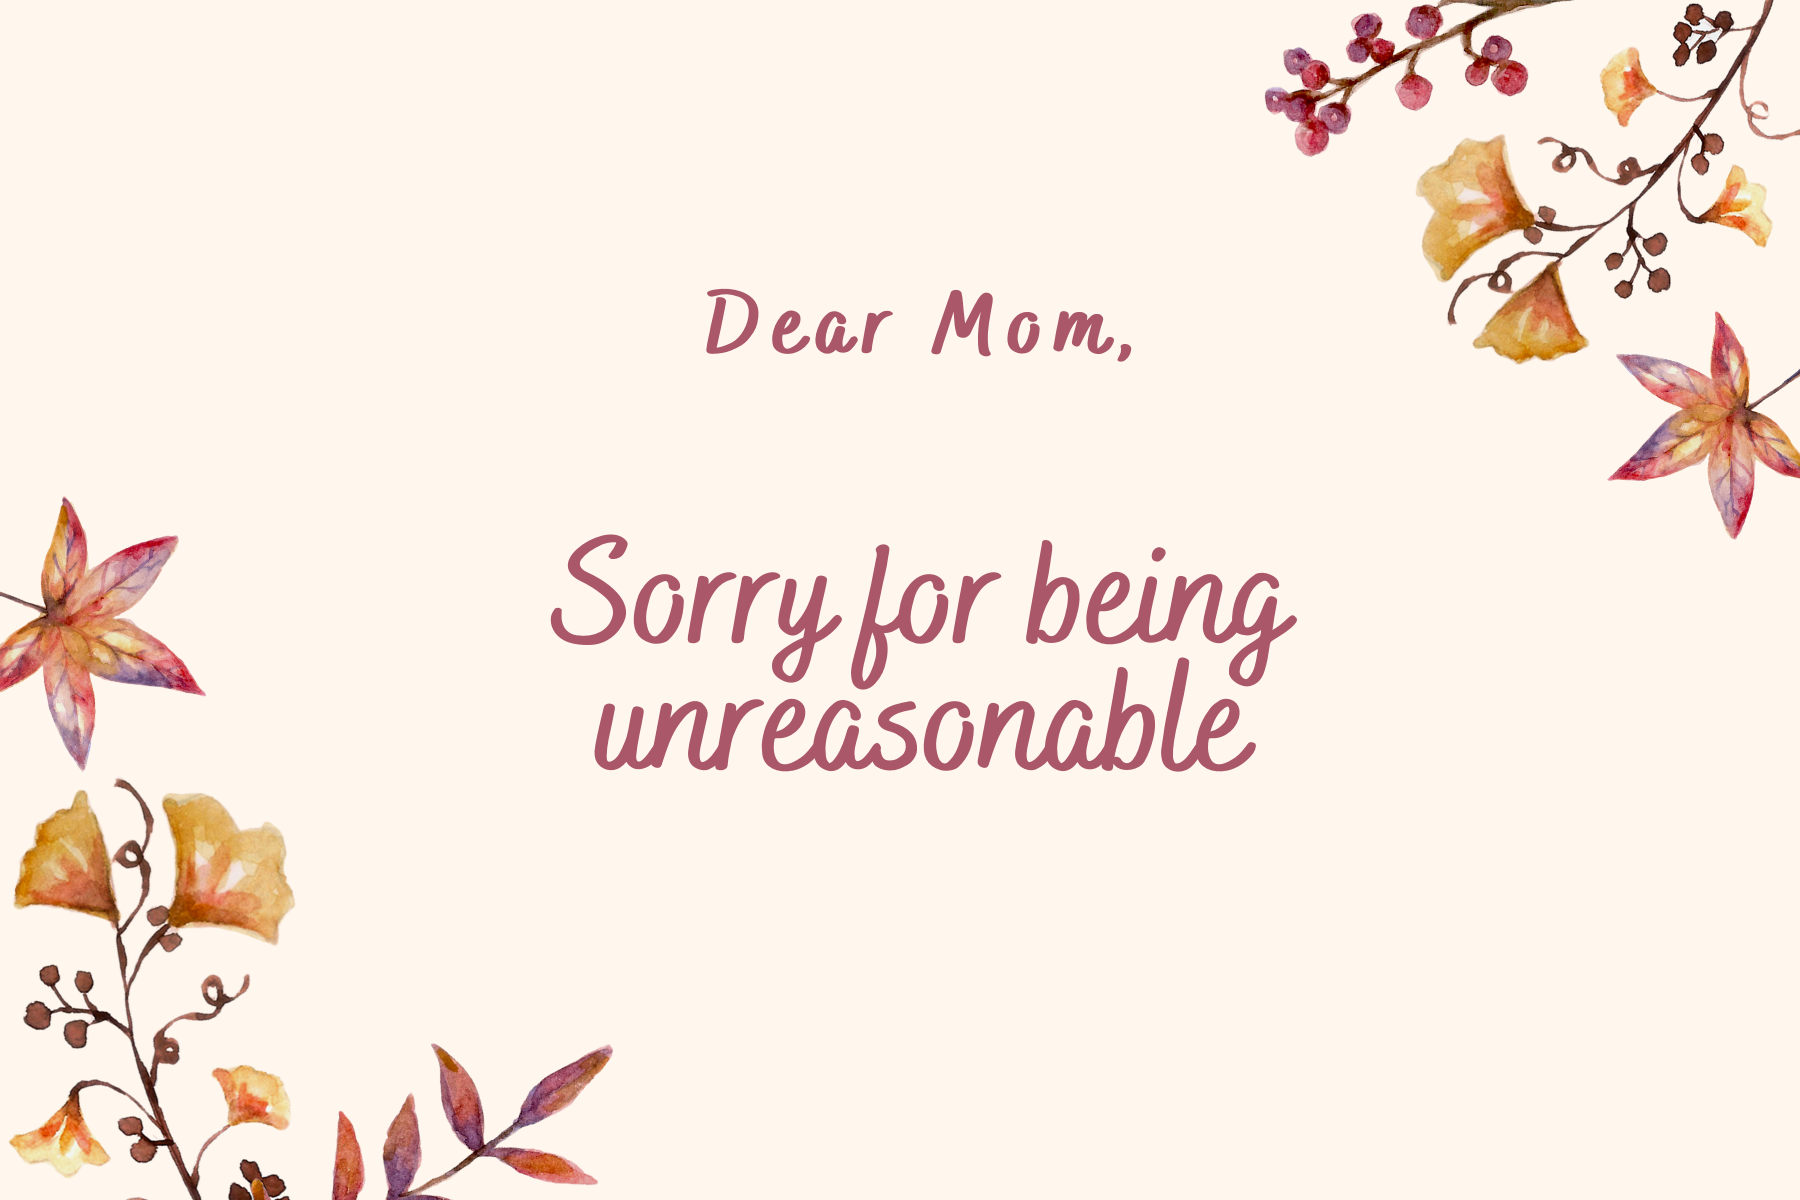 Sorry for being unreasonable